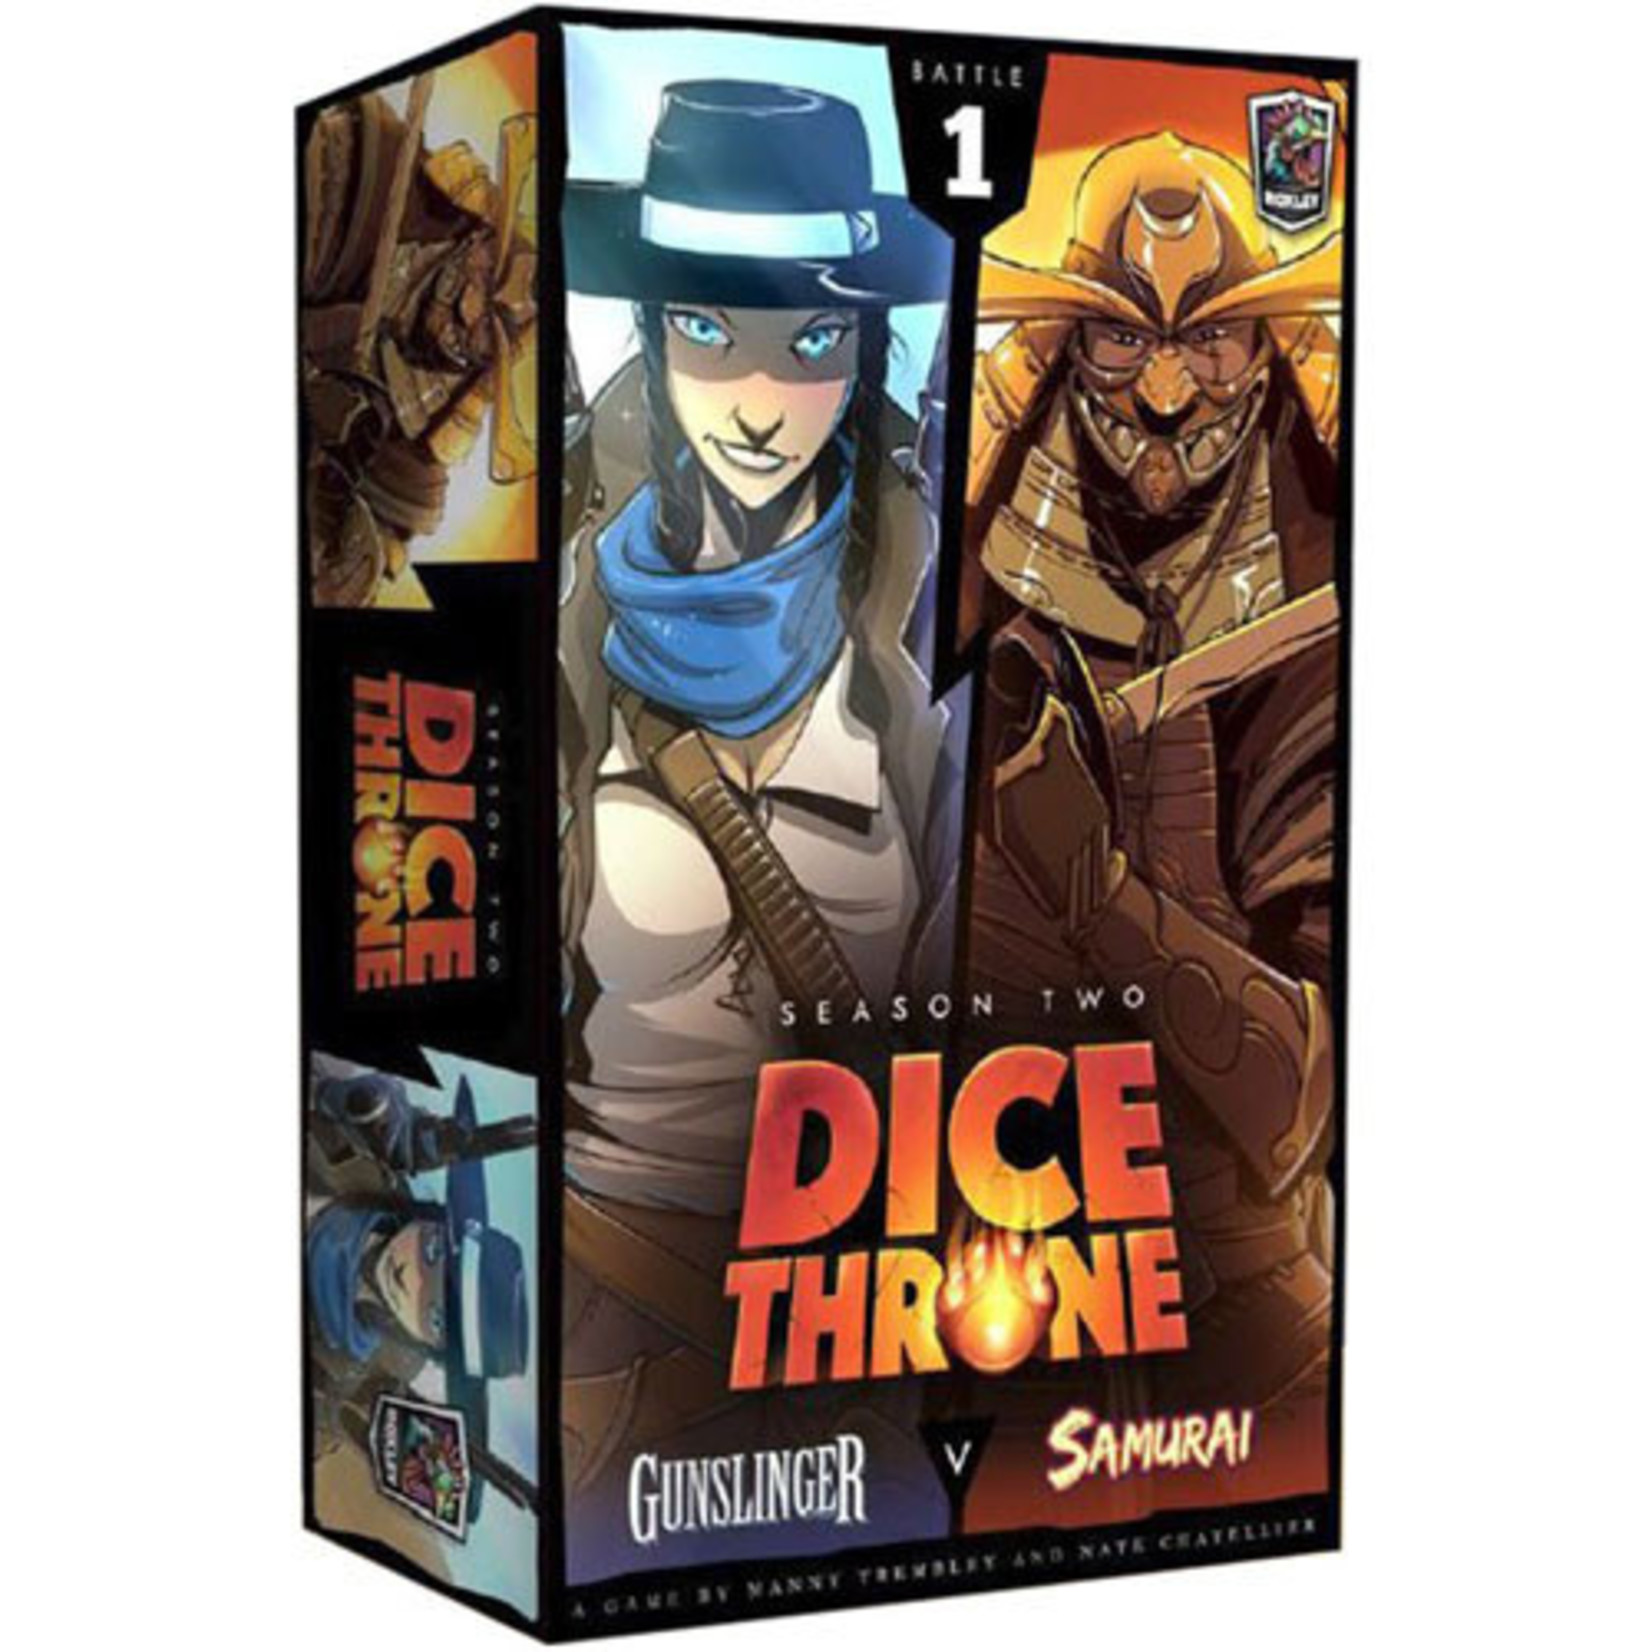 Dice Throne: Season 2 - Box 1 - Gunslinger vs Samurai